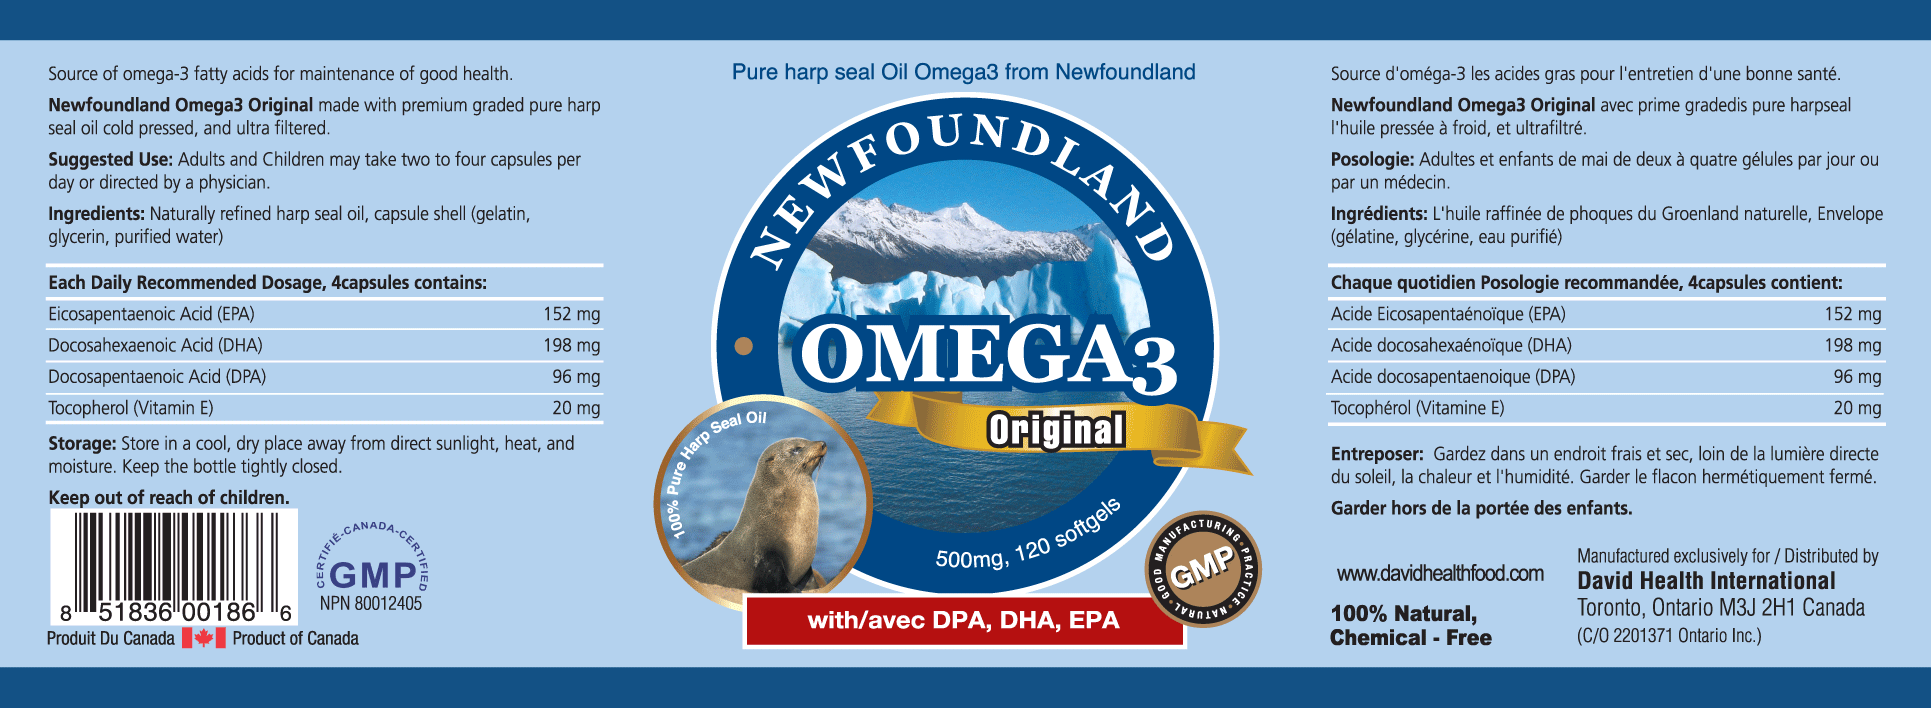 NEWFOUNDLAND OMEGA 3 TRAVEL